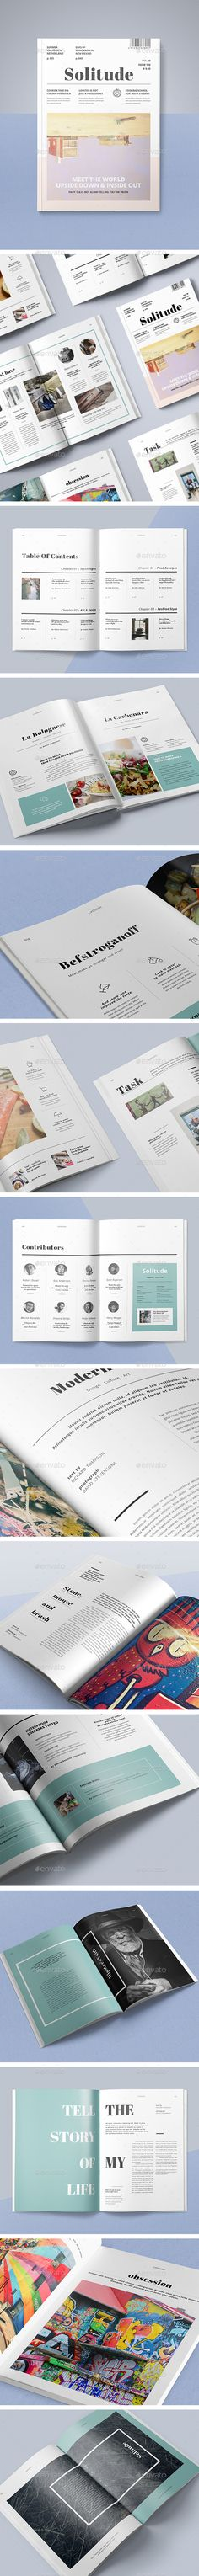 50 Pages Minimal Magazine Template InDesign INDD. Download here: https://graphicriver.net/item/50-pages-minimal-magazine/17472492?ref=ksioks